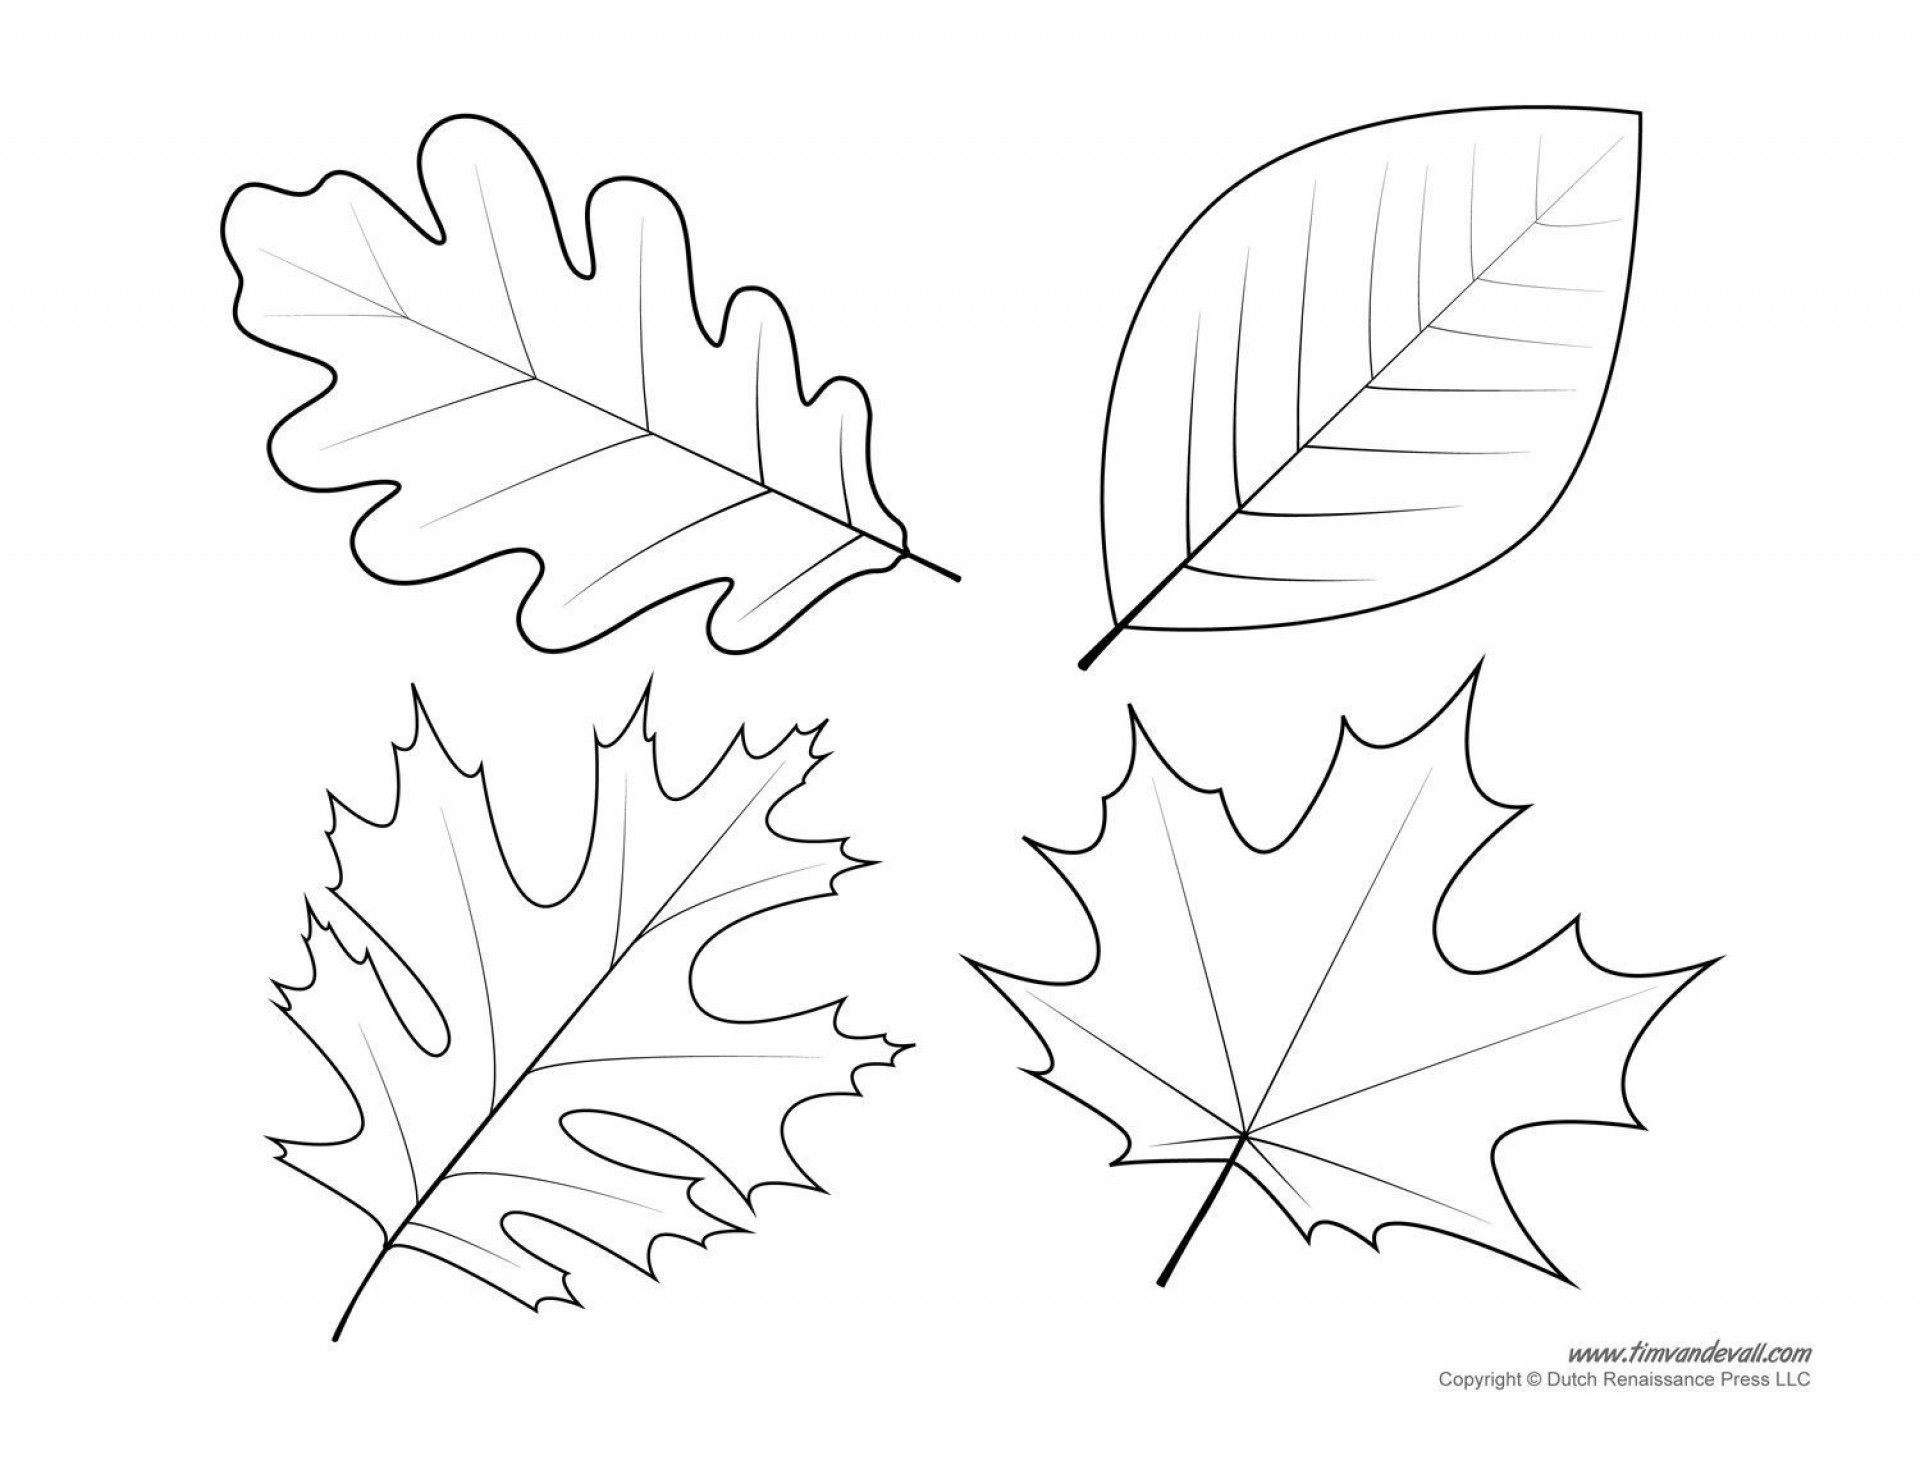 005 Shocking Leaf Template With Line High Definition  Fall Printable Blank1920